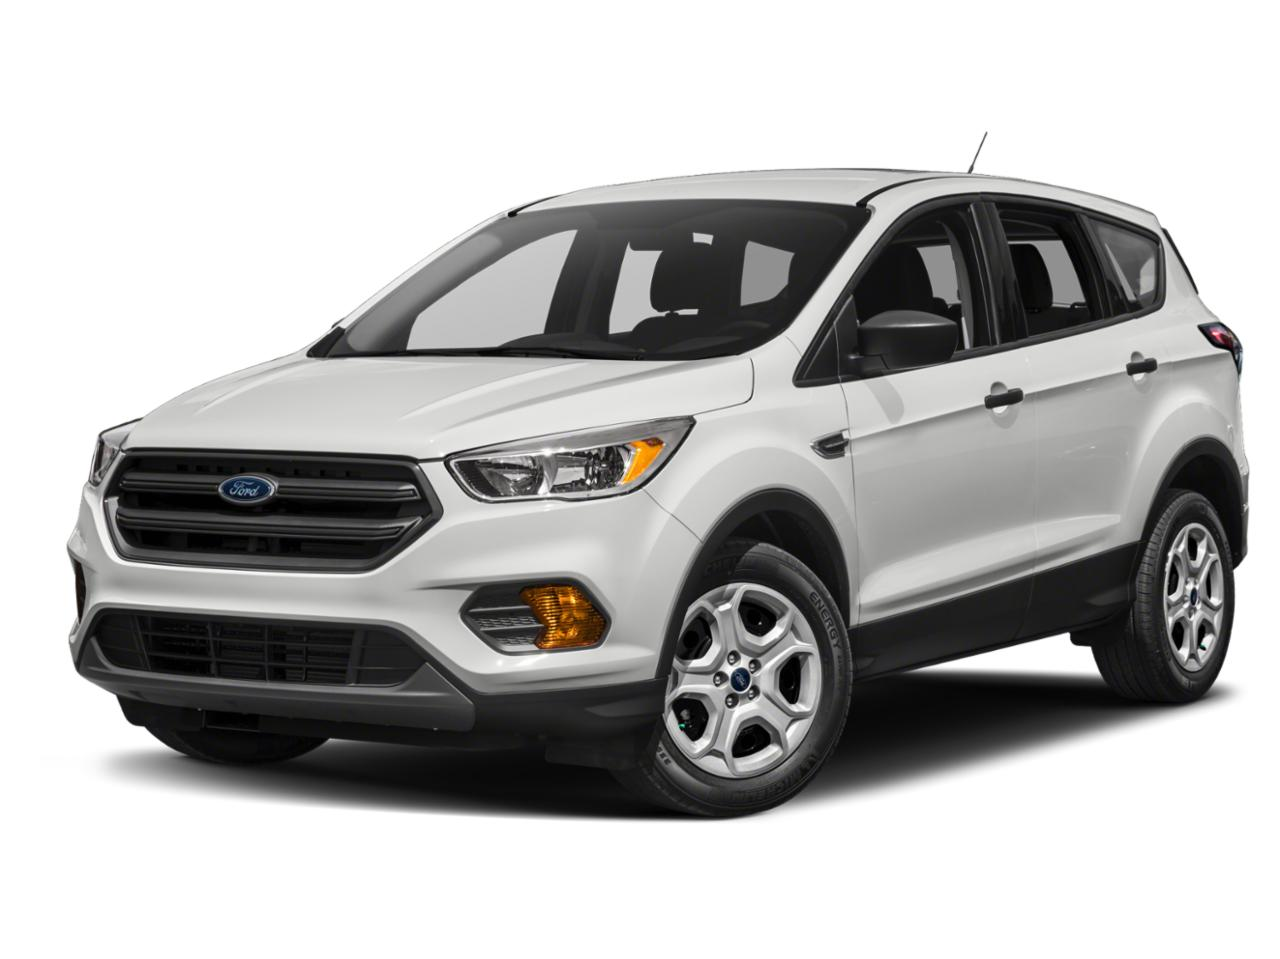 2018 Ford Escape Vehicle Photo in Melbourne, FL 32901